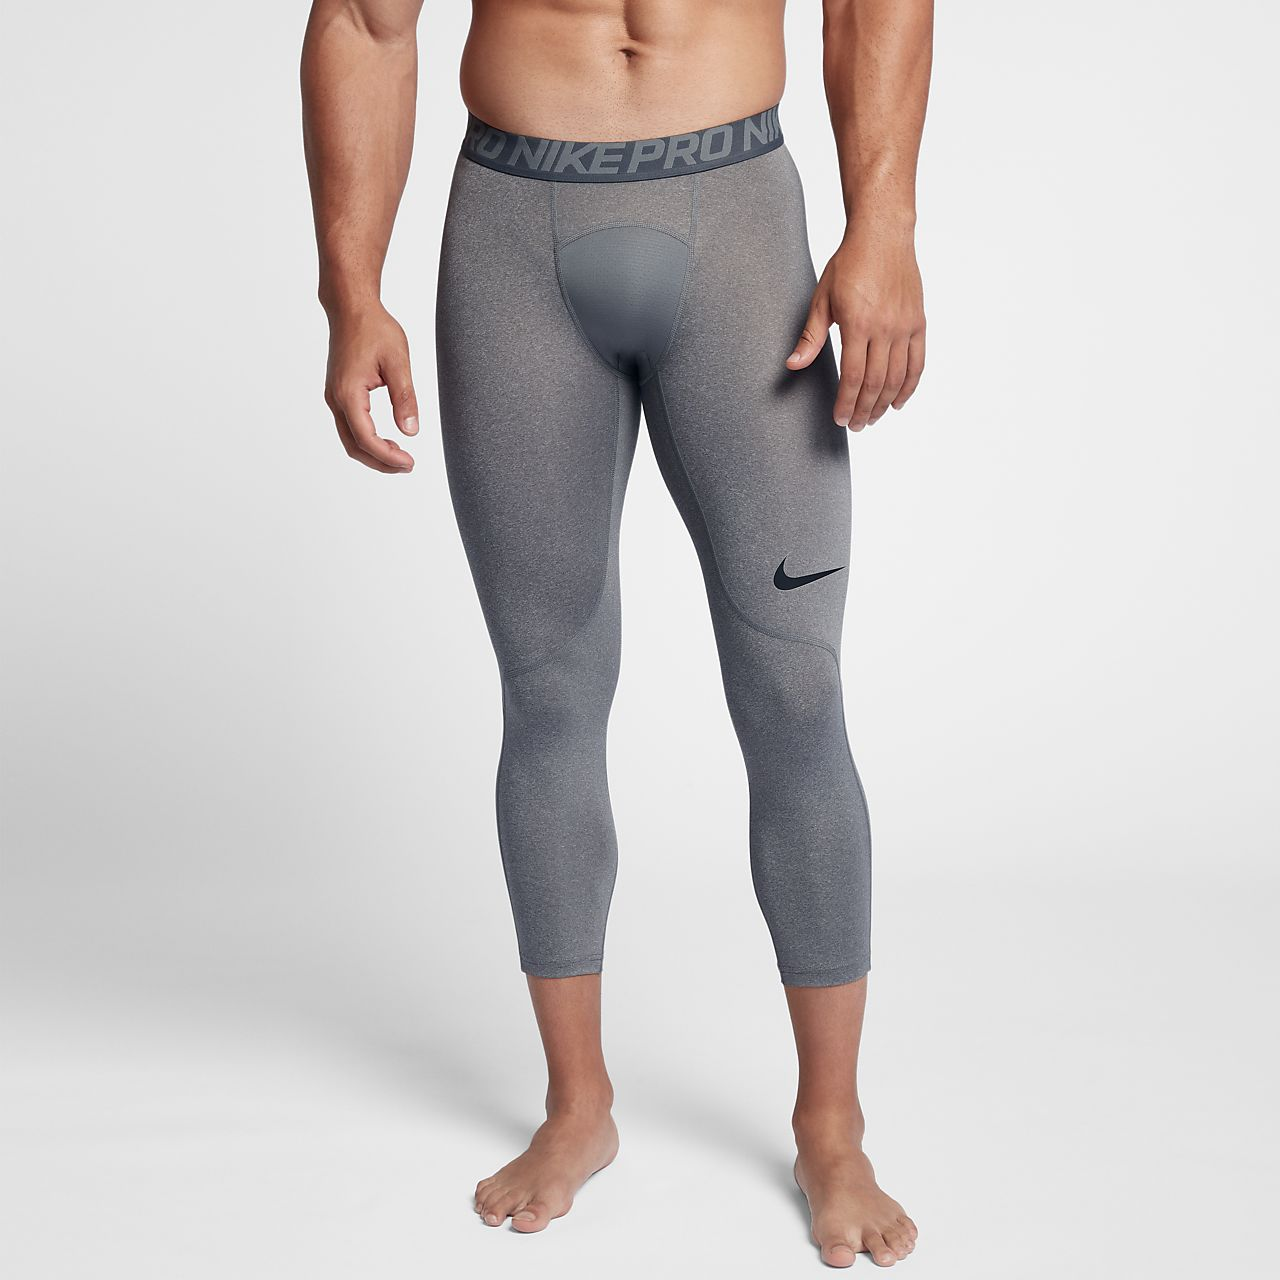 194bfc03a Nike Pro Men's 3/4 Training Tights. Nike.com AU